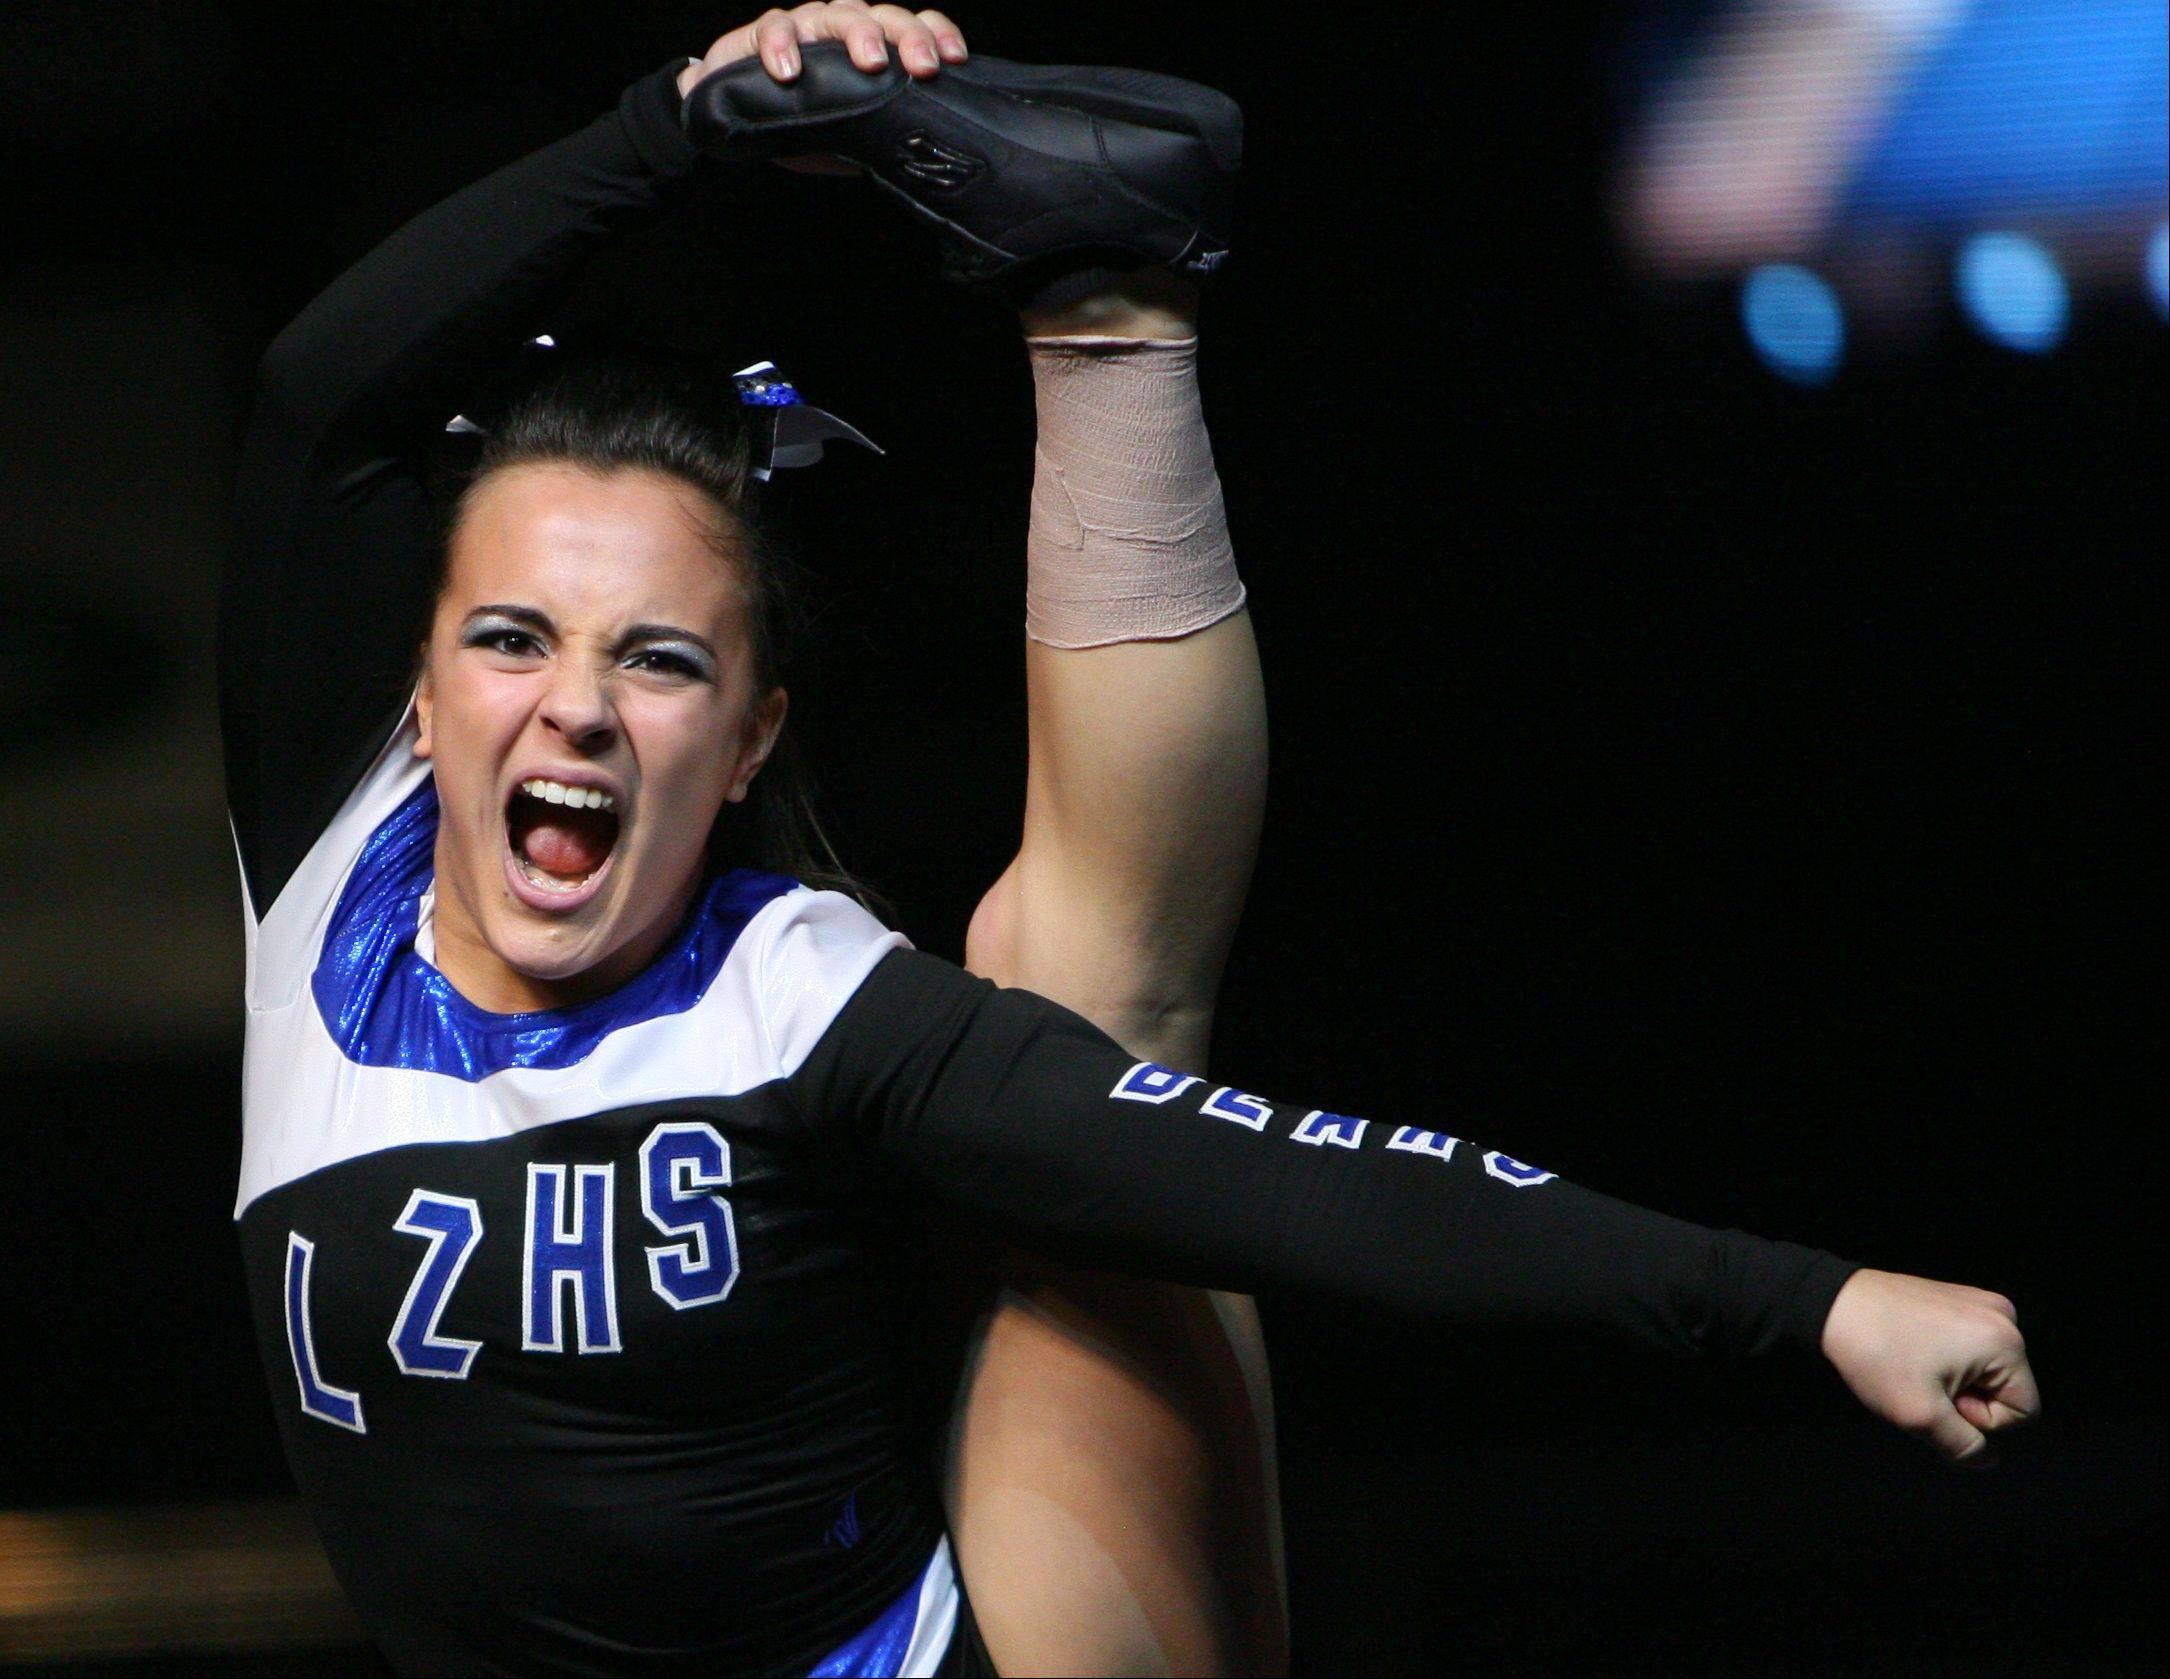 Lake Zurich High School participates in the IHSA Competitive Cheerleading finals on Saturday, Feb. 2 at the U.S. Cellular Coliseum in Bloomington.